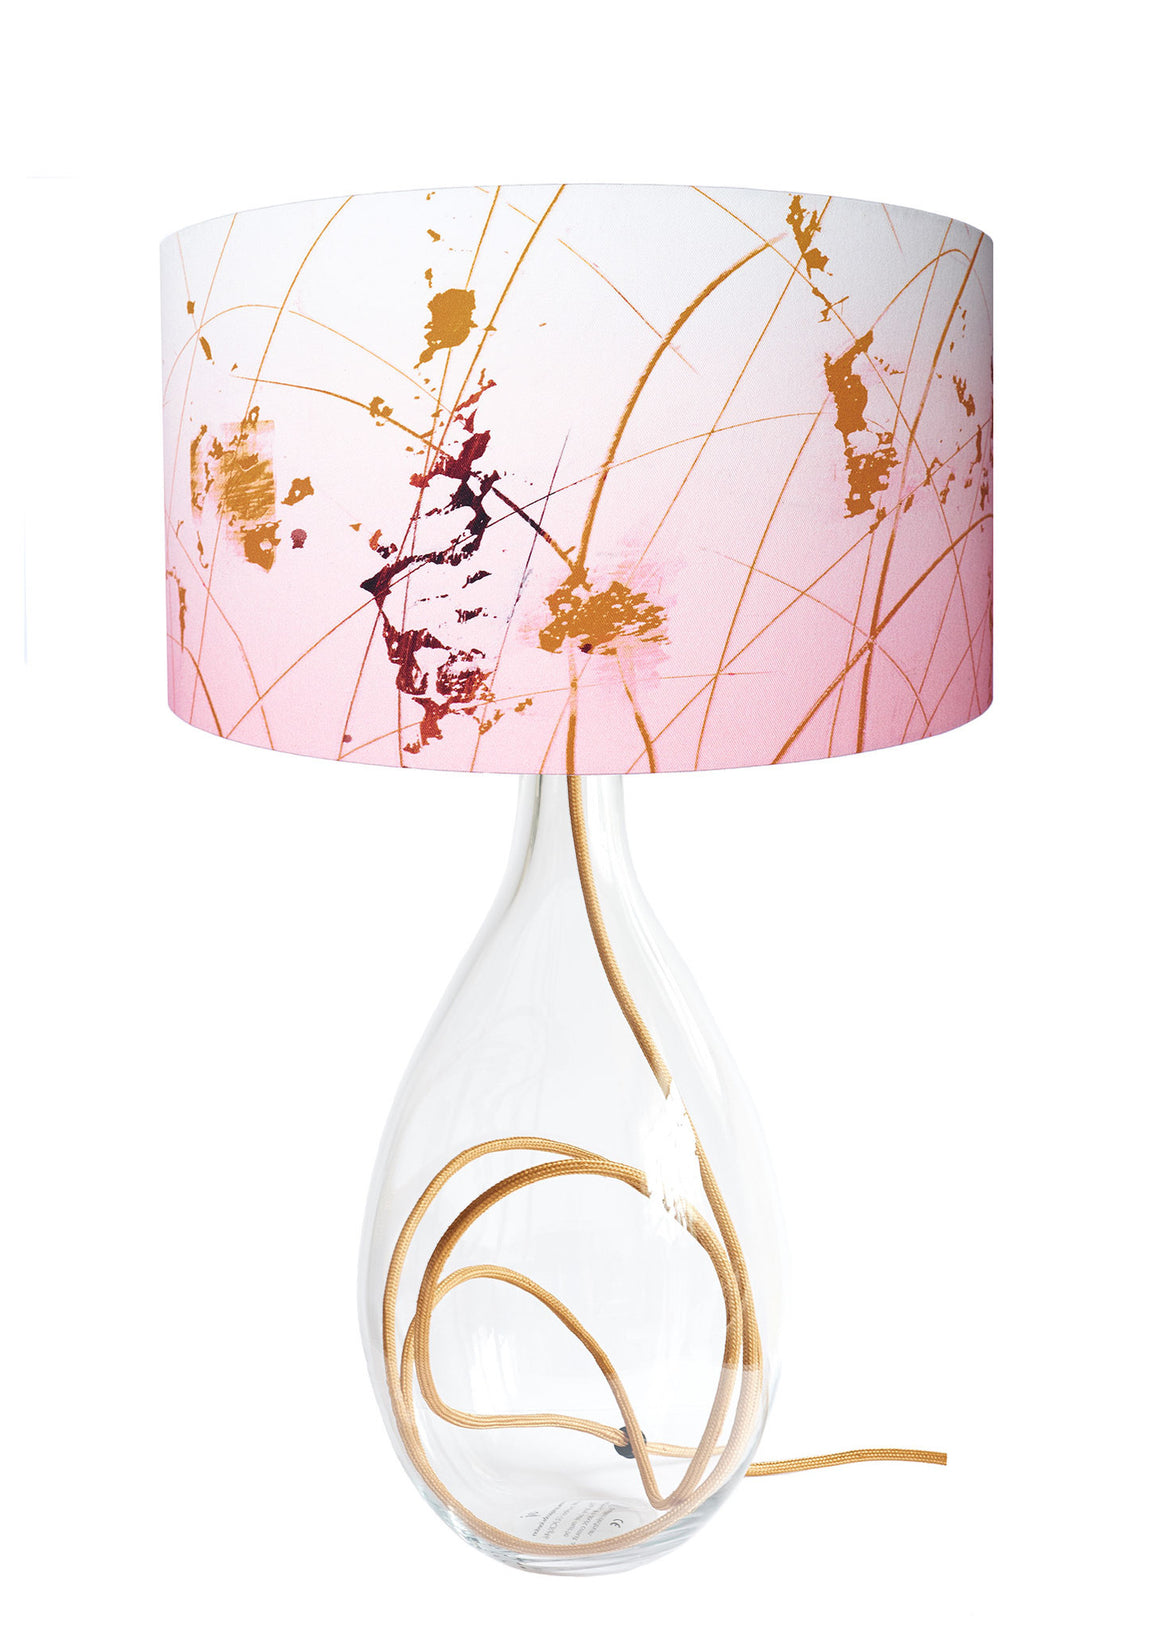 contemporary table lamp designed by Anna Jacobs - Table lamps collection - Afternoon Dreaming lampshade on gold flex crystal glass lamp base